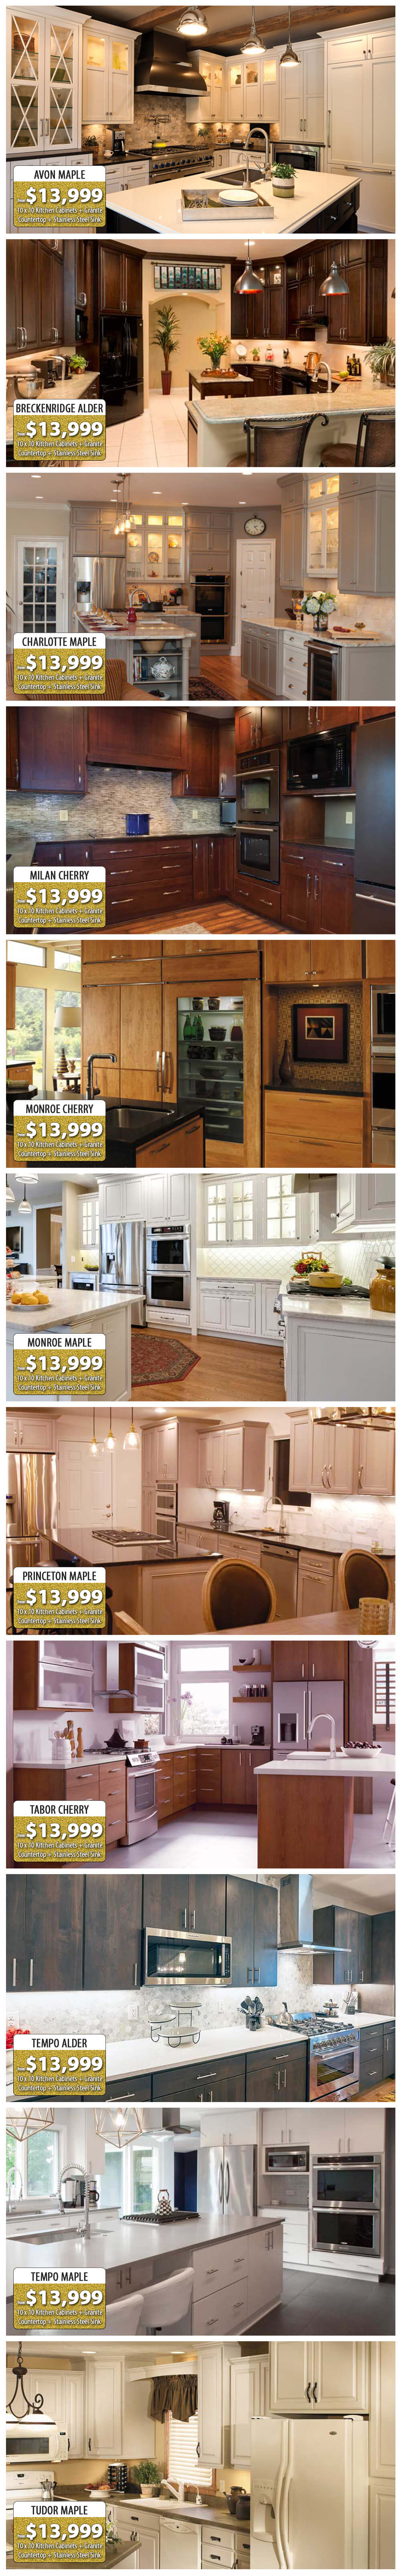 10 x 10 kitchen cabinets l shaped alba kitchen cabinets 13999 10x10 gold package deals gold package 10 kitchen cabinet sale our best ever